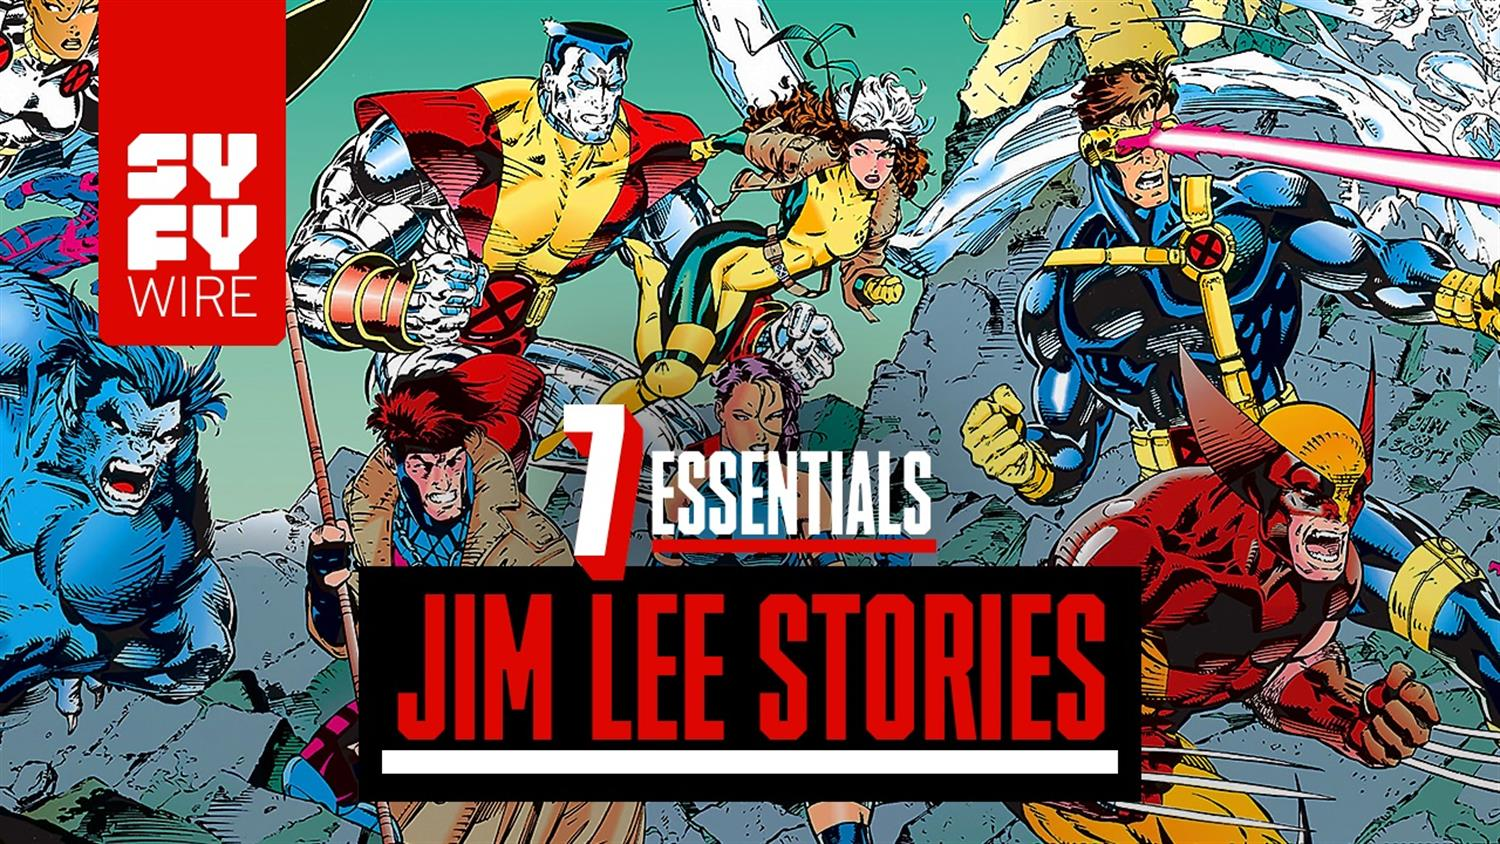 7 Essential Jim Lee Stories